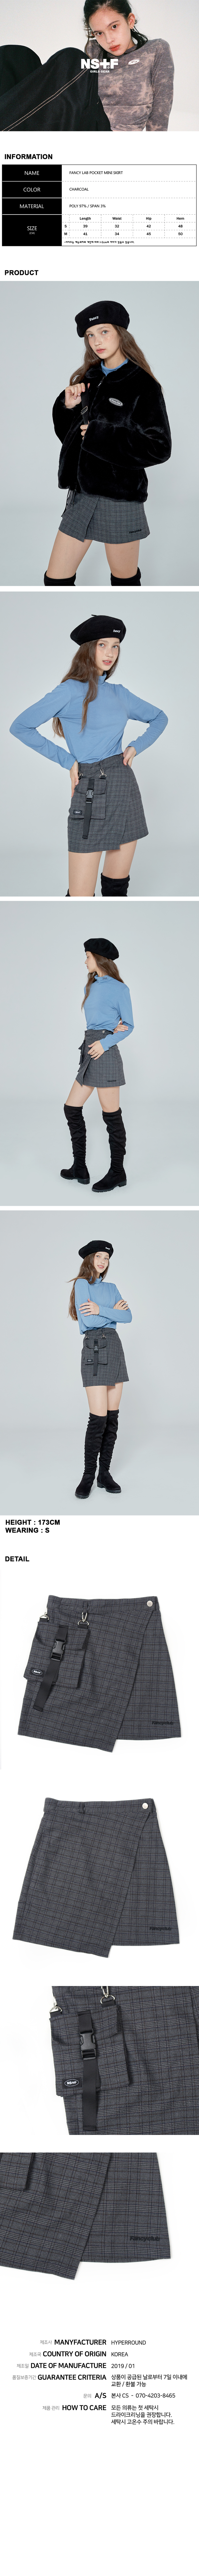 FANCY LAB POCKET MINI SKIRT GRAY 복사.jpg